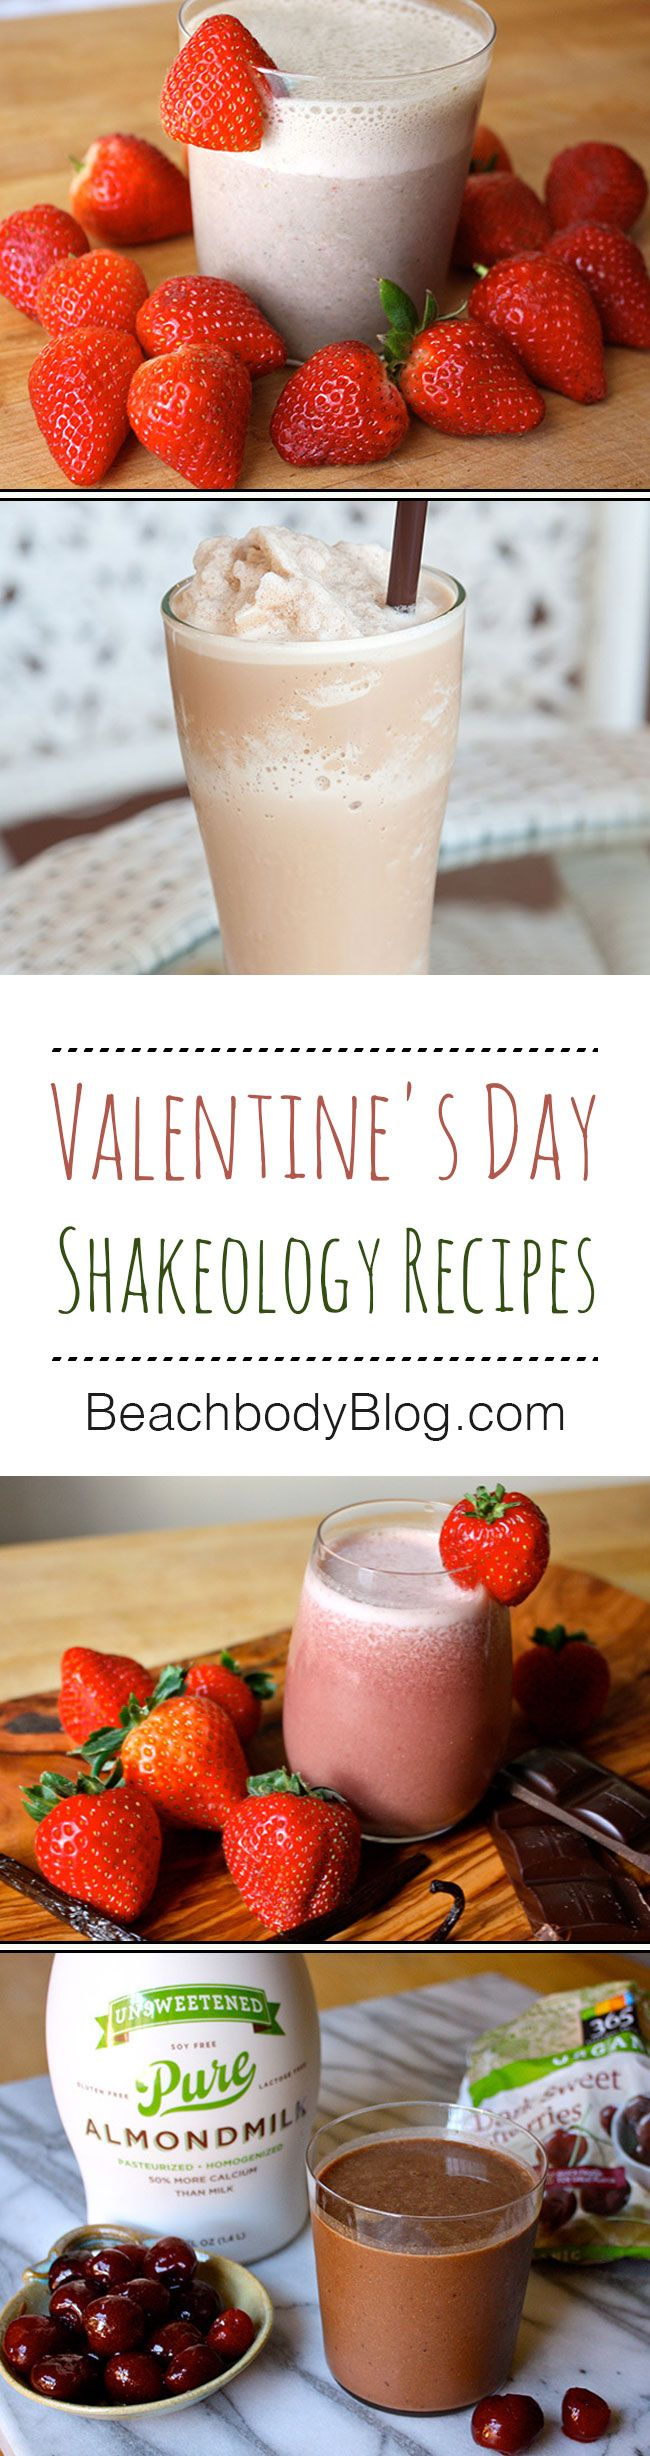 Shakeology recipes Choco Cherry-licious & more